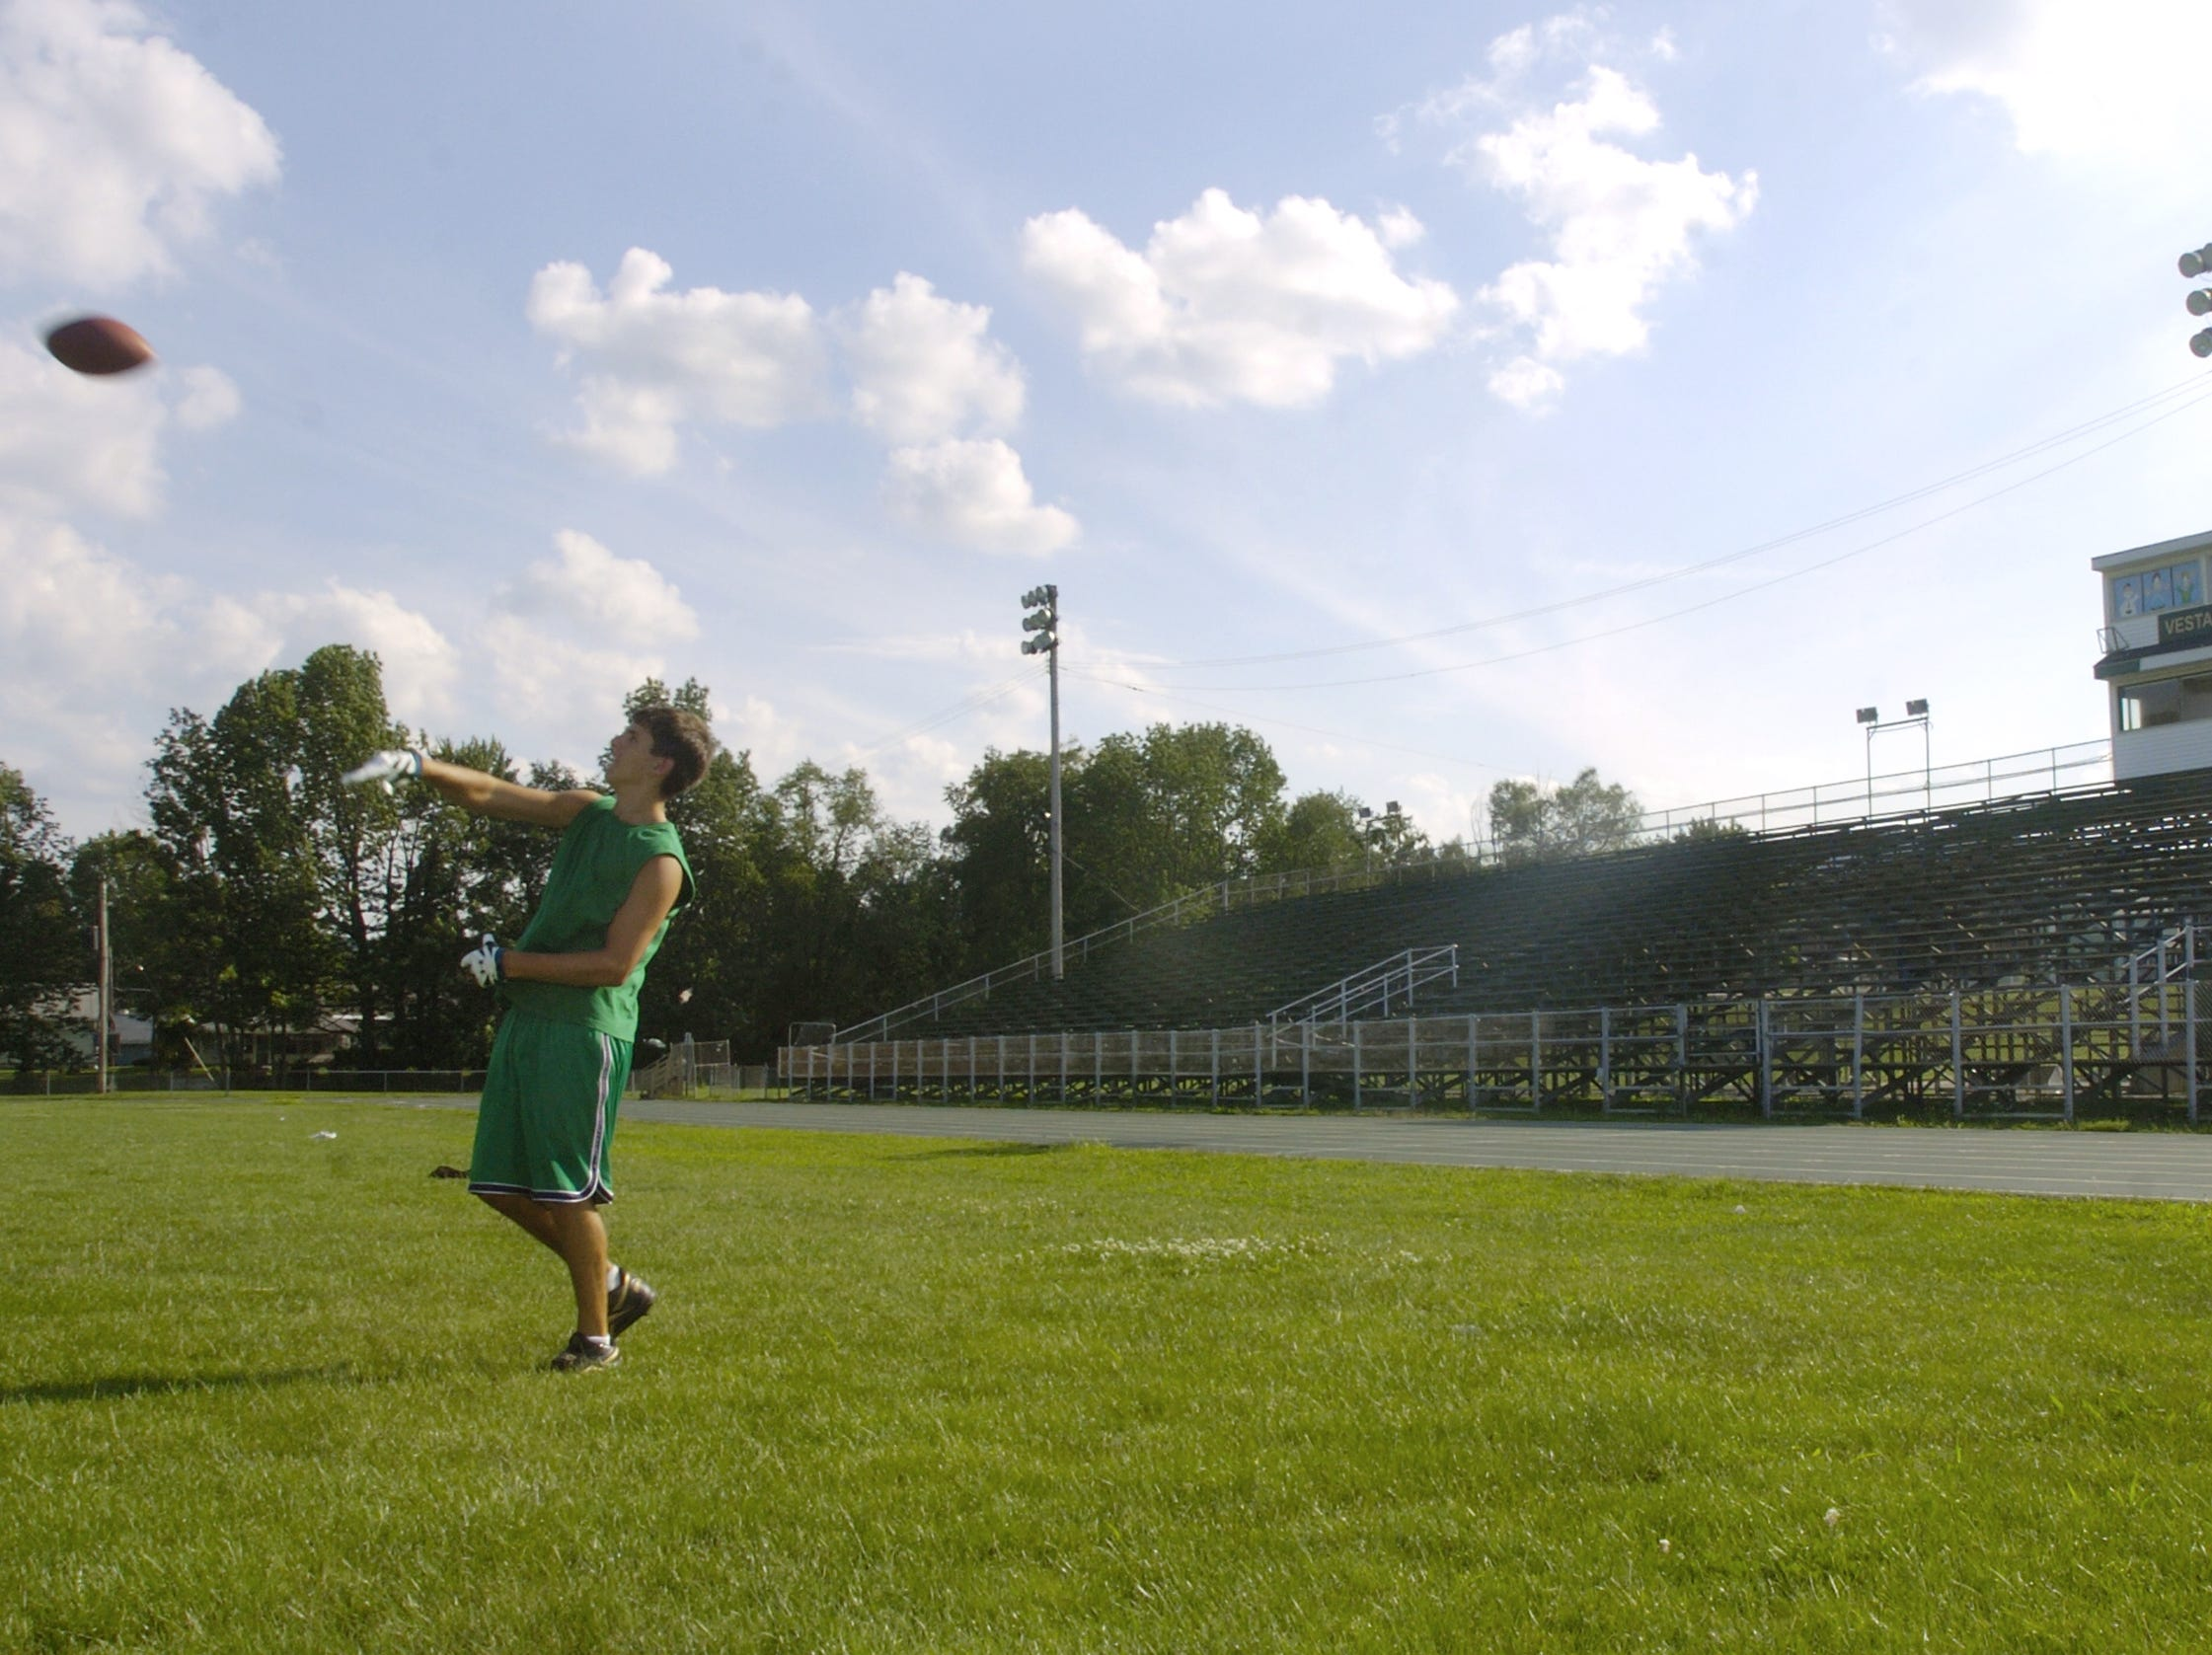 In 2004, Vestal High School wide receiver A.J. Davis throws the football during an informal practice session at the school's football field.